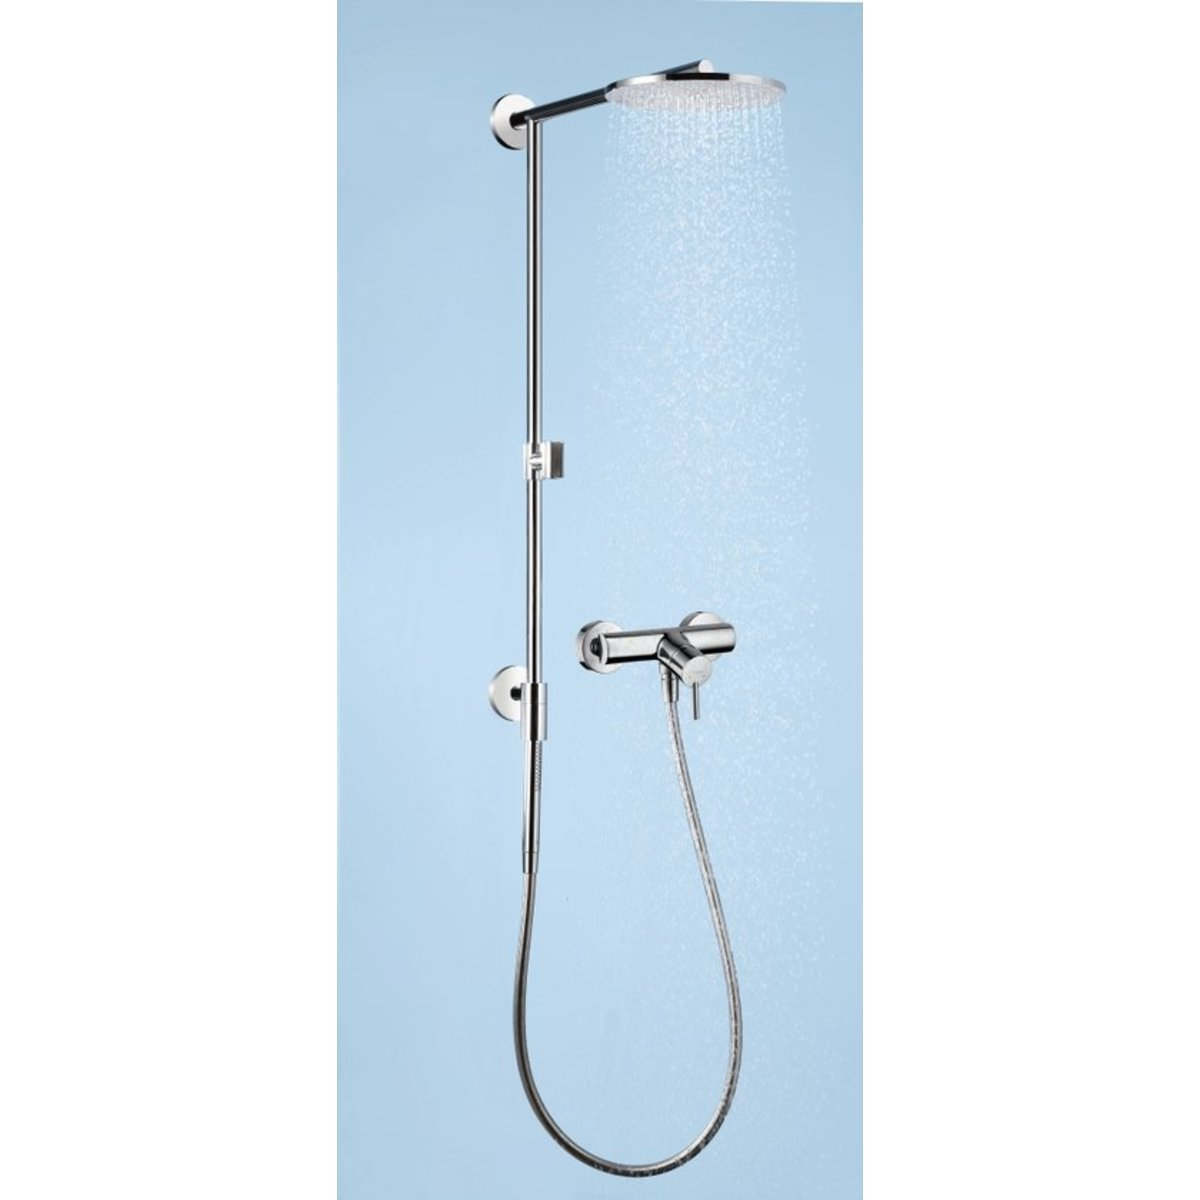 Hansgrohe raindance connect colonne de douche air 24cm avance 46cm chrome 27164000 - Colonne de douche hansgrohe raindance ...